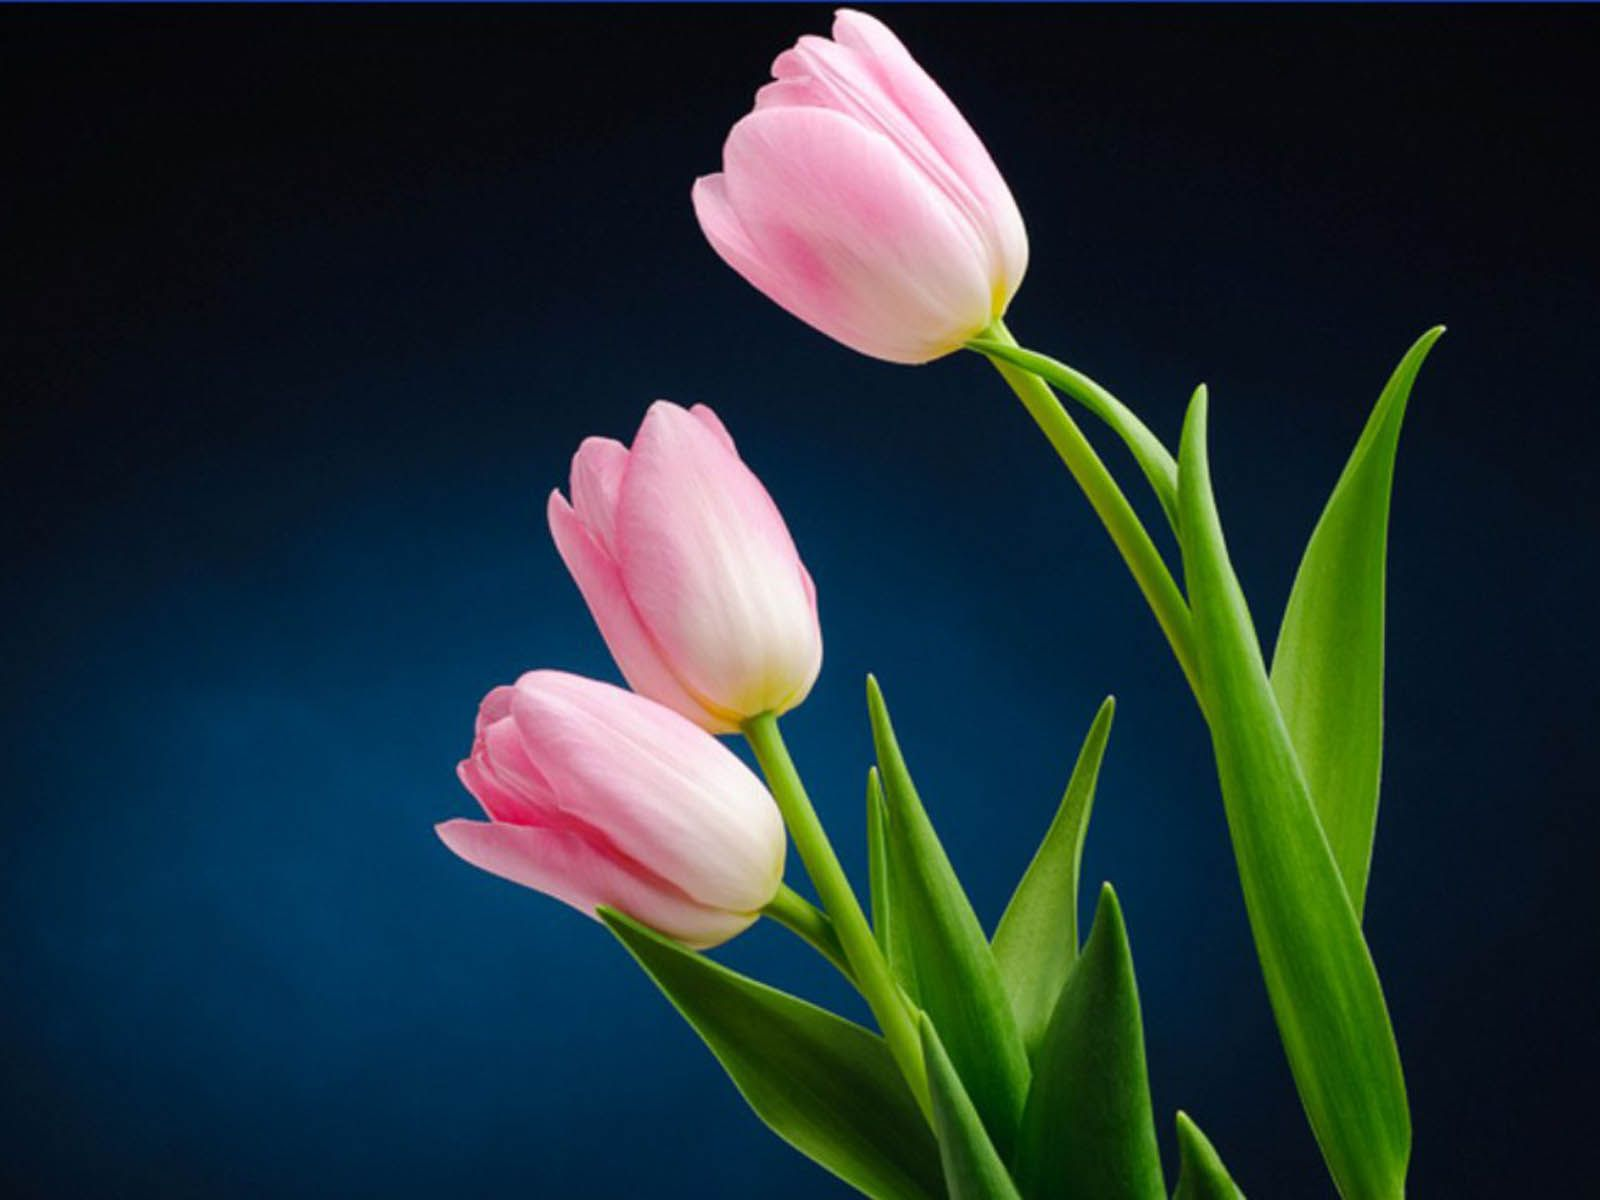 Pink Tulip Flower Pictures 2013 Wallpapers Tulips Flowers Tulip Flower Pictures Flower Pictures